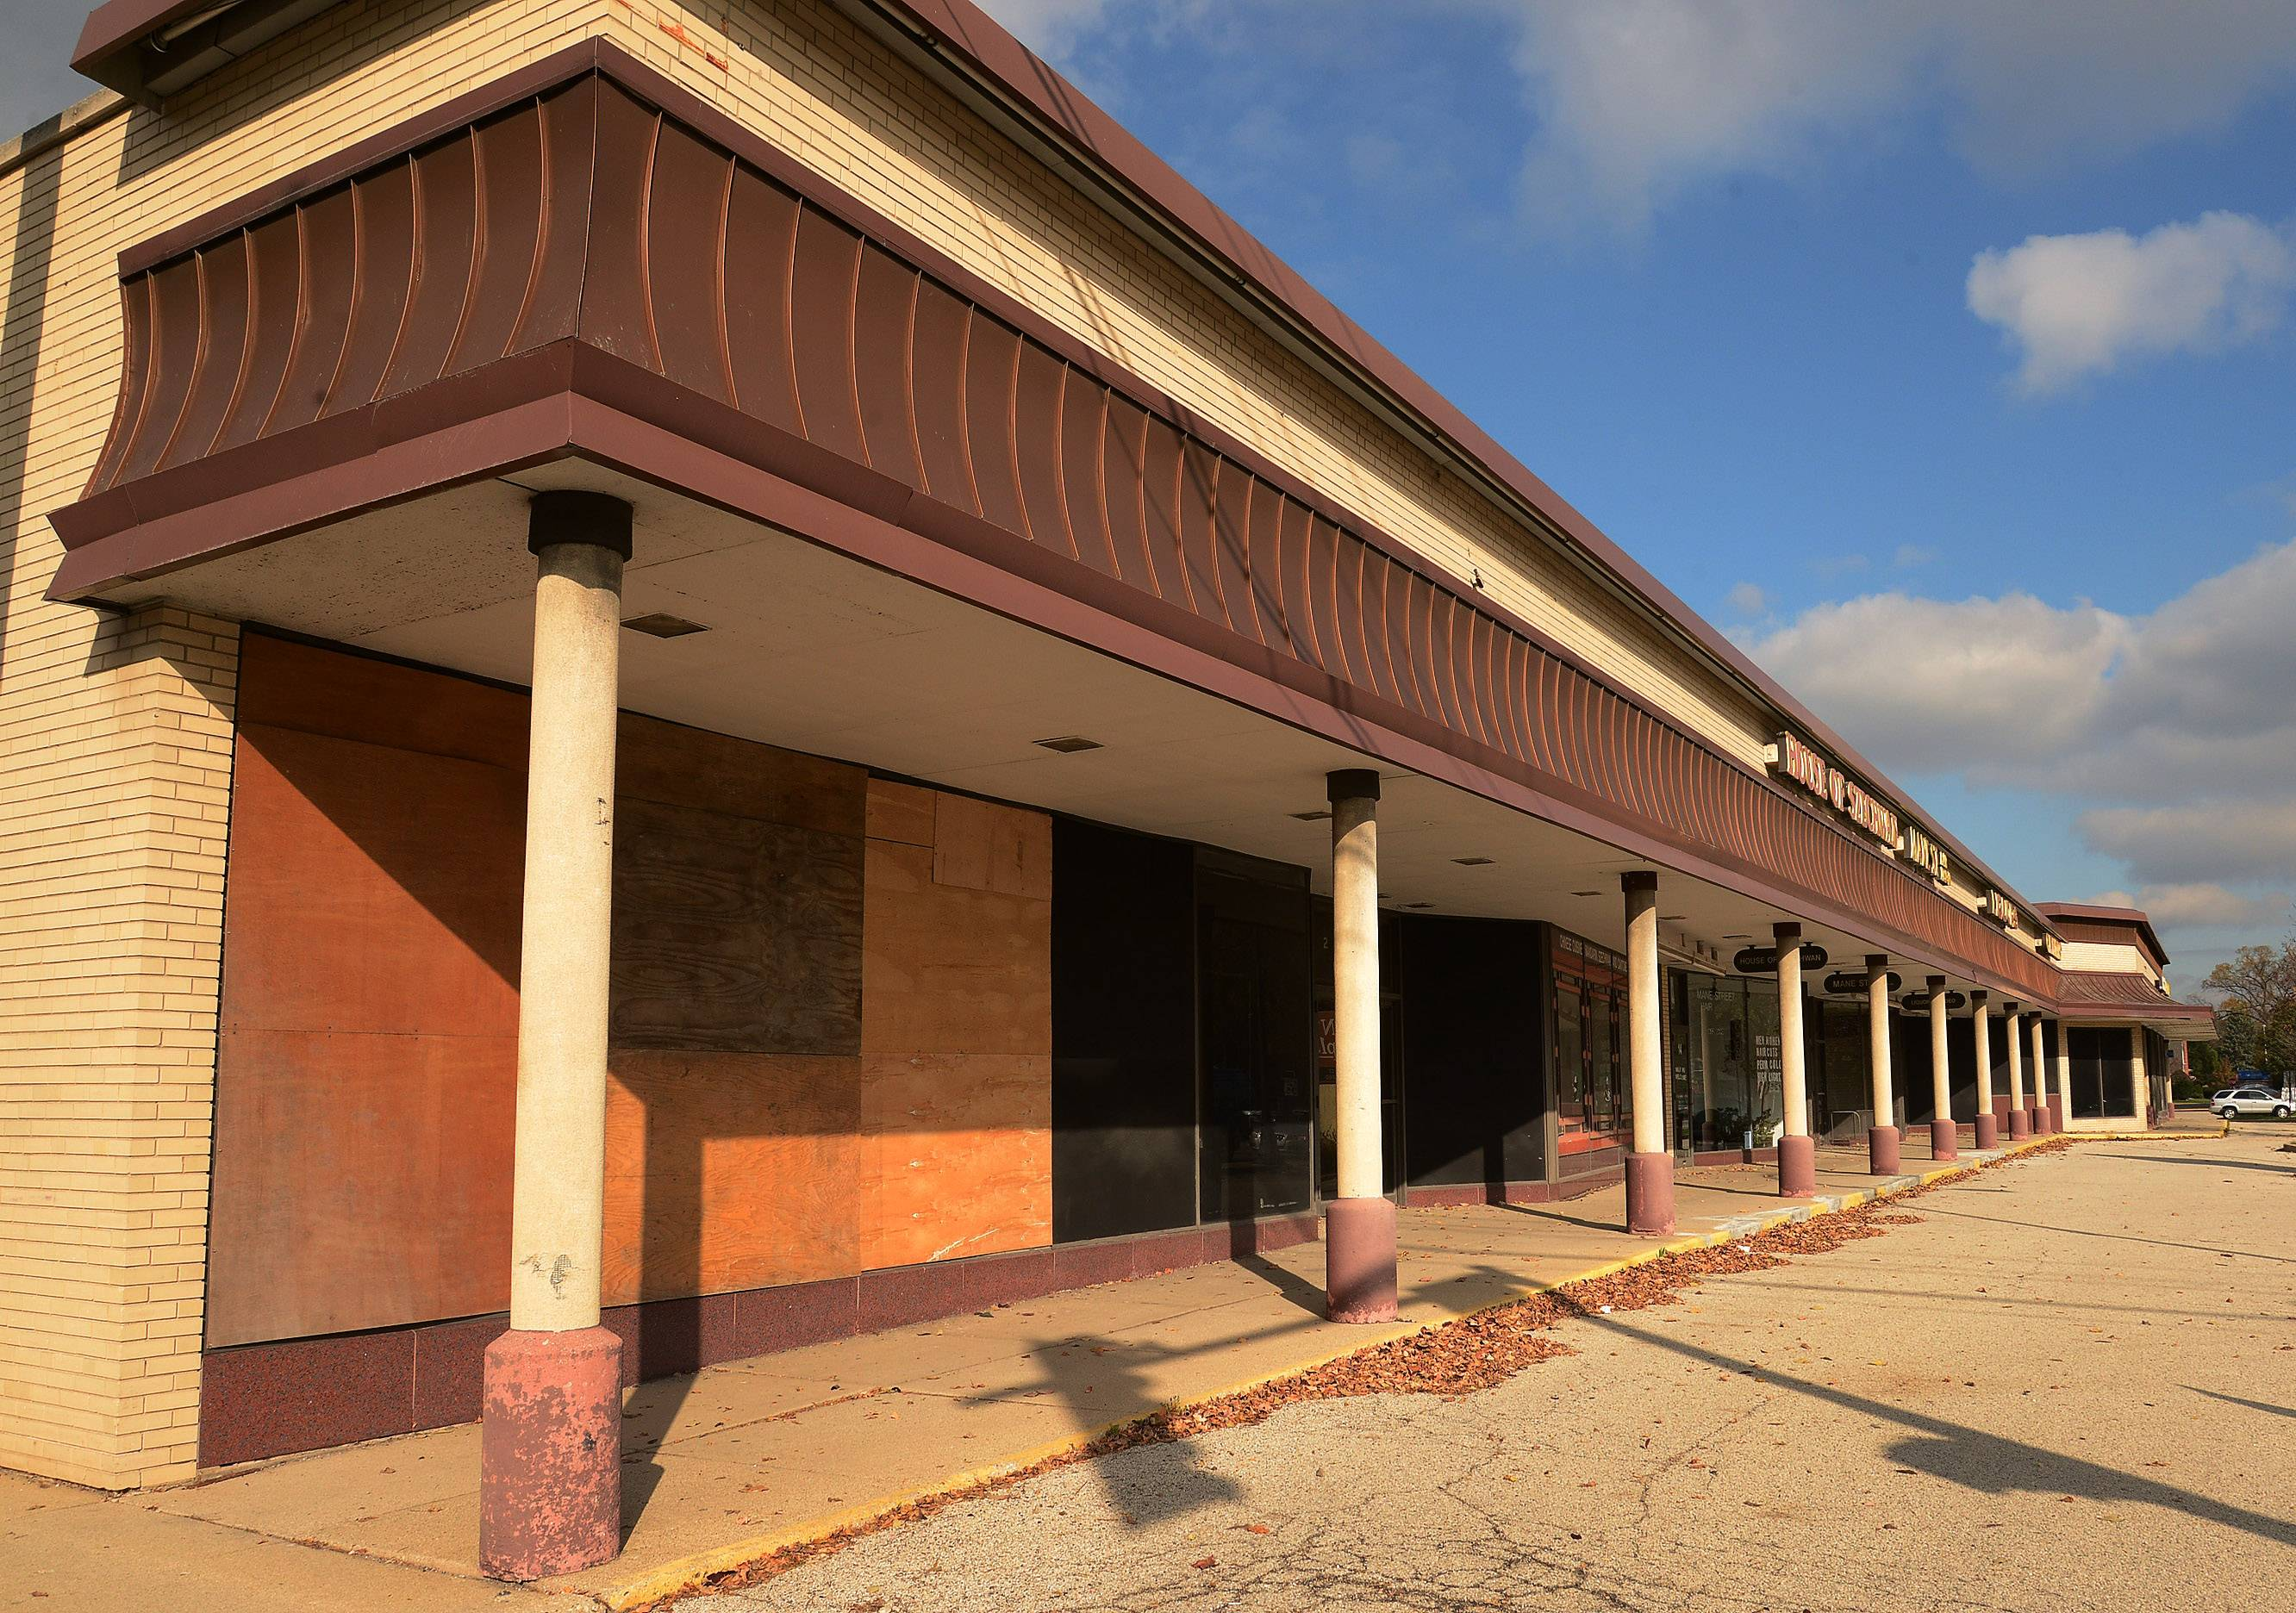 Mount Prospect moves ahead on strip mall demolition